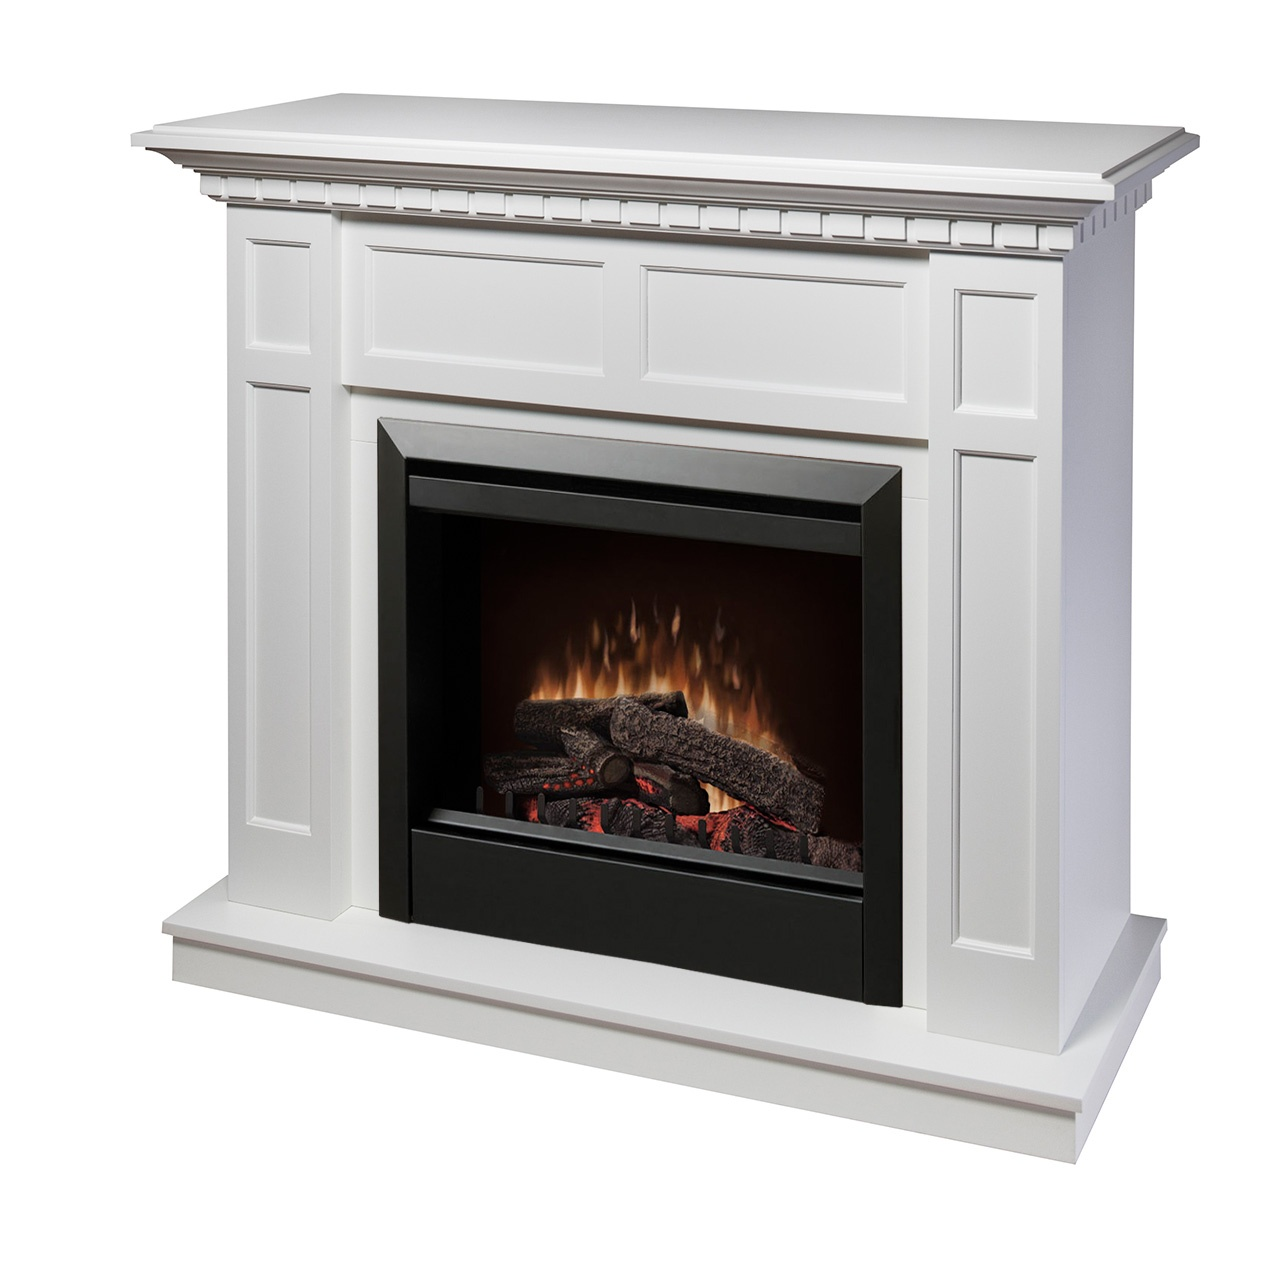 Dimplex Caprice Dfp4743w Electric Fireplace Wall Mantel Electric Fireplaces